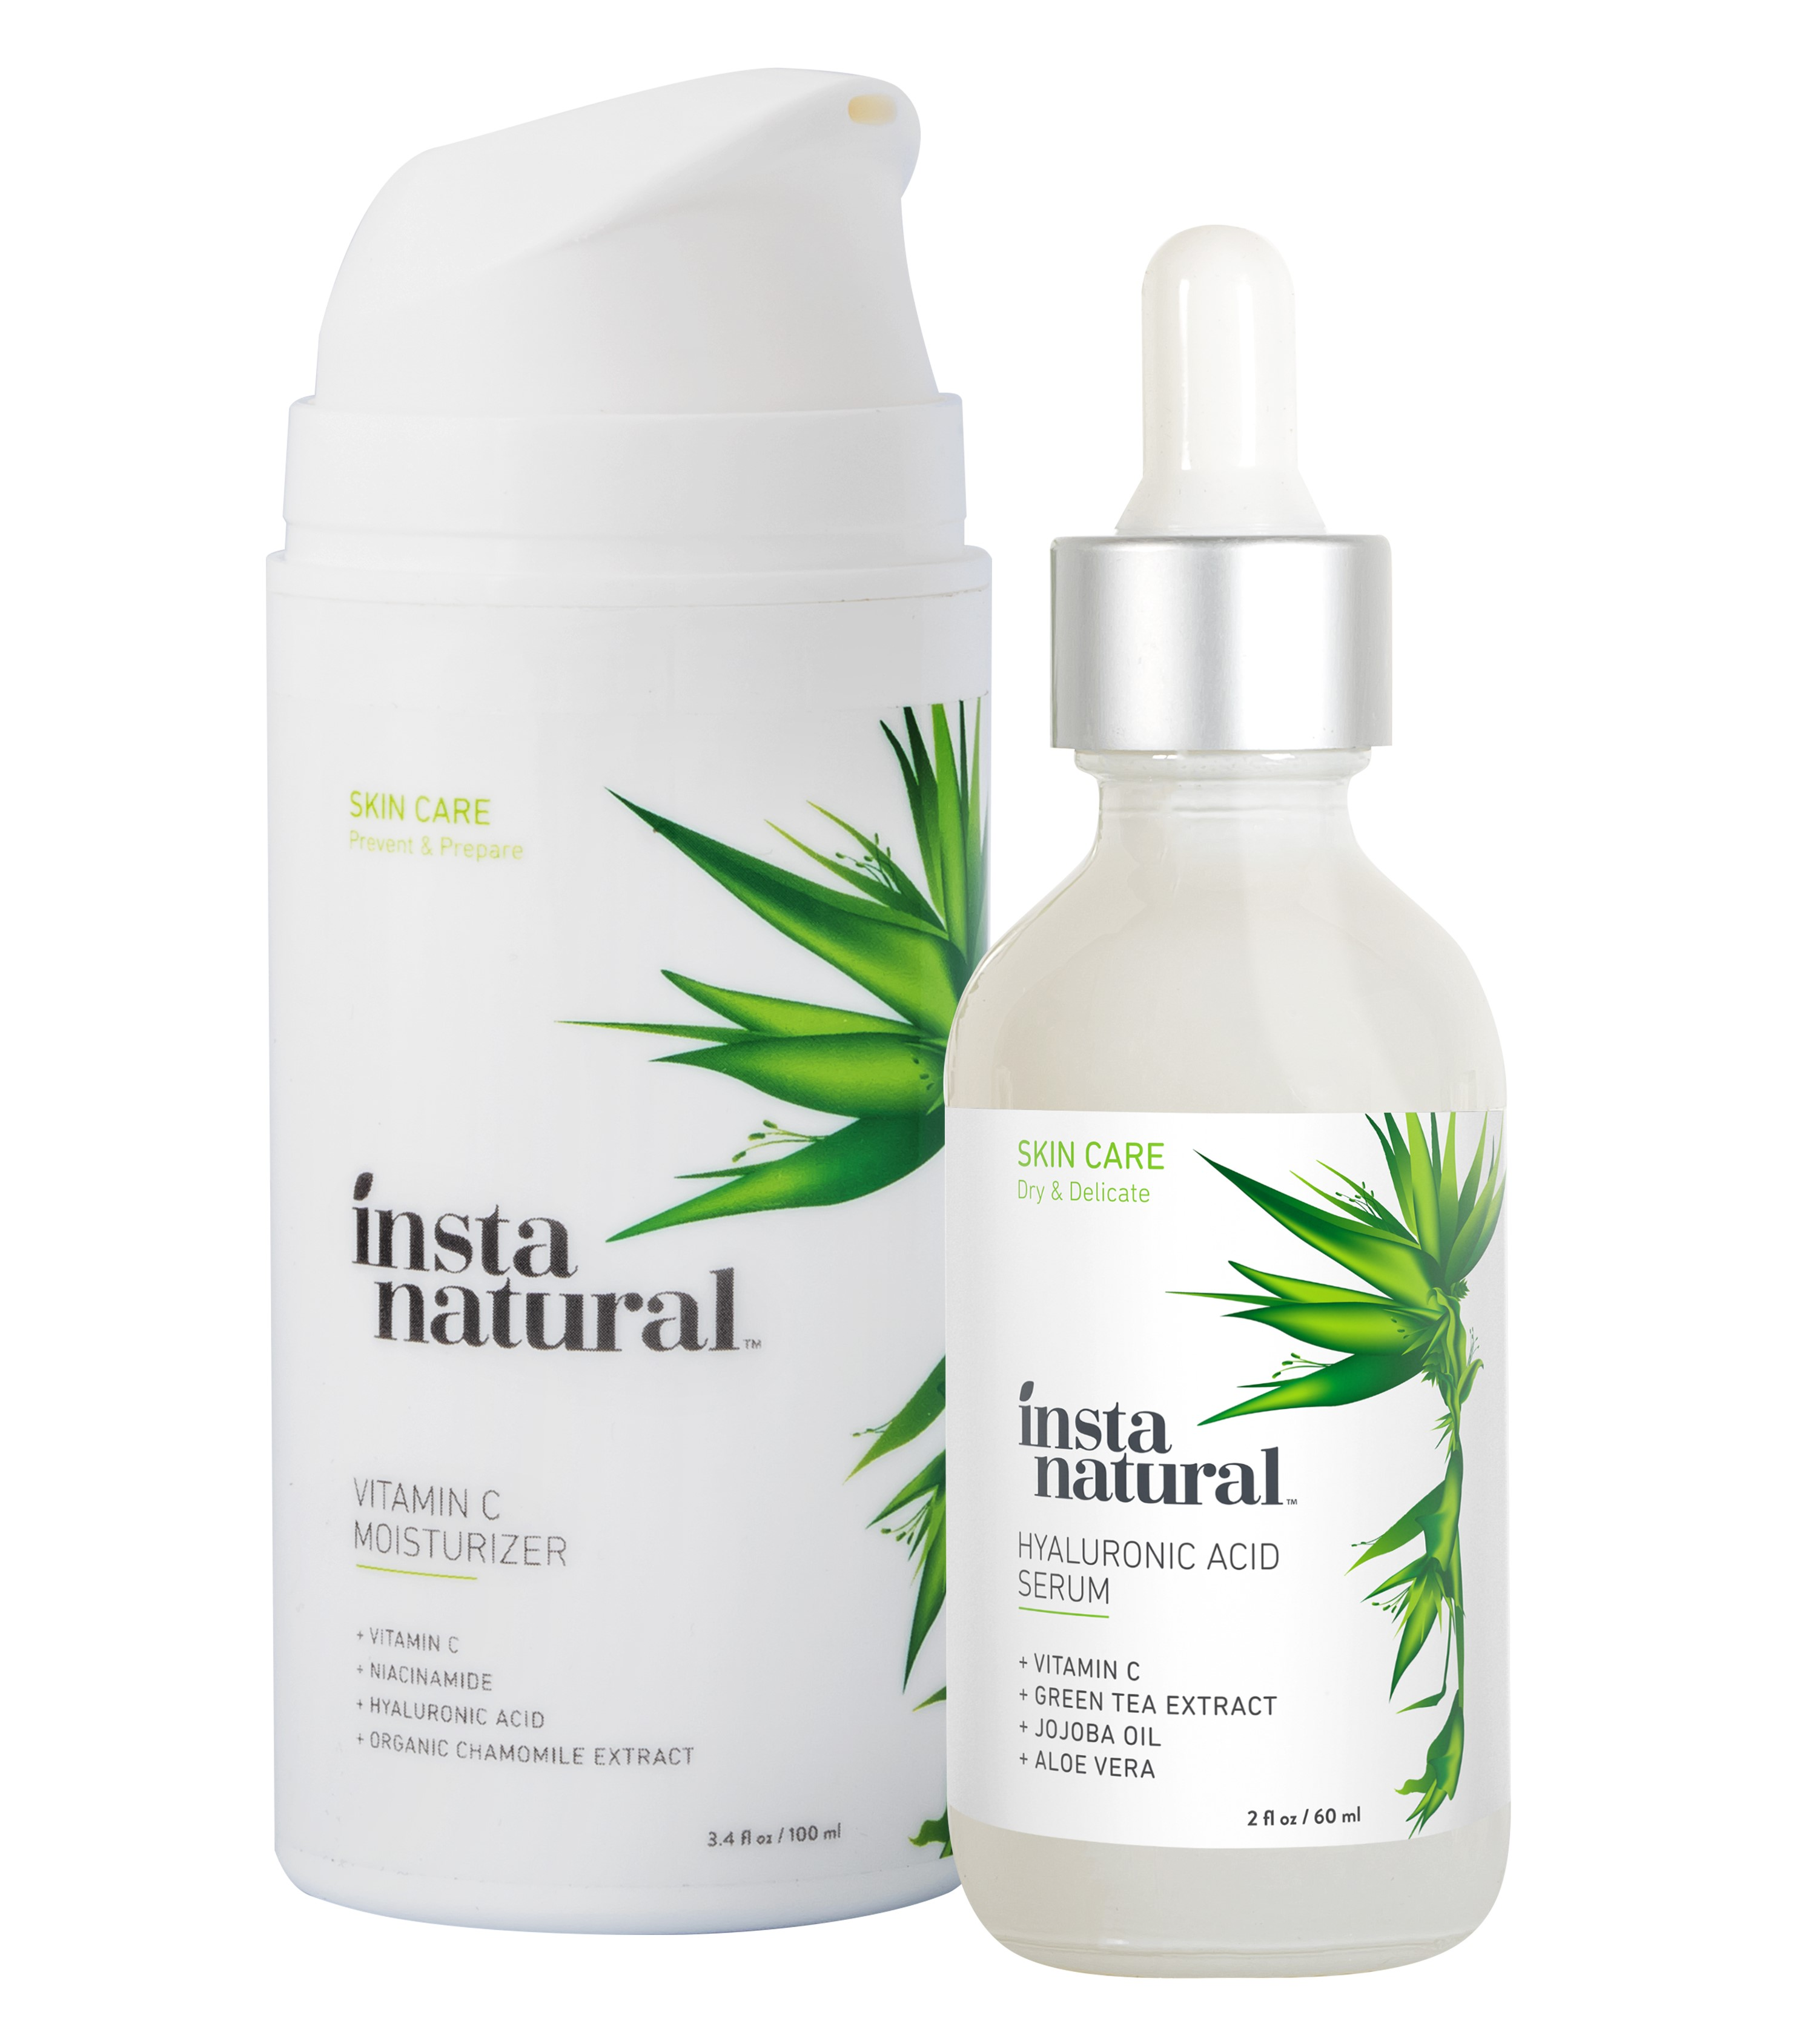 InstaNatural, Niacinamide Serum, 2 fl oz(pack of 4) Dr. Splendid MagiMist Fine Mist Facial Hydrator Atomizer